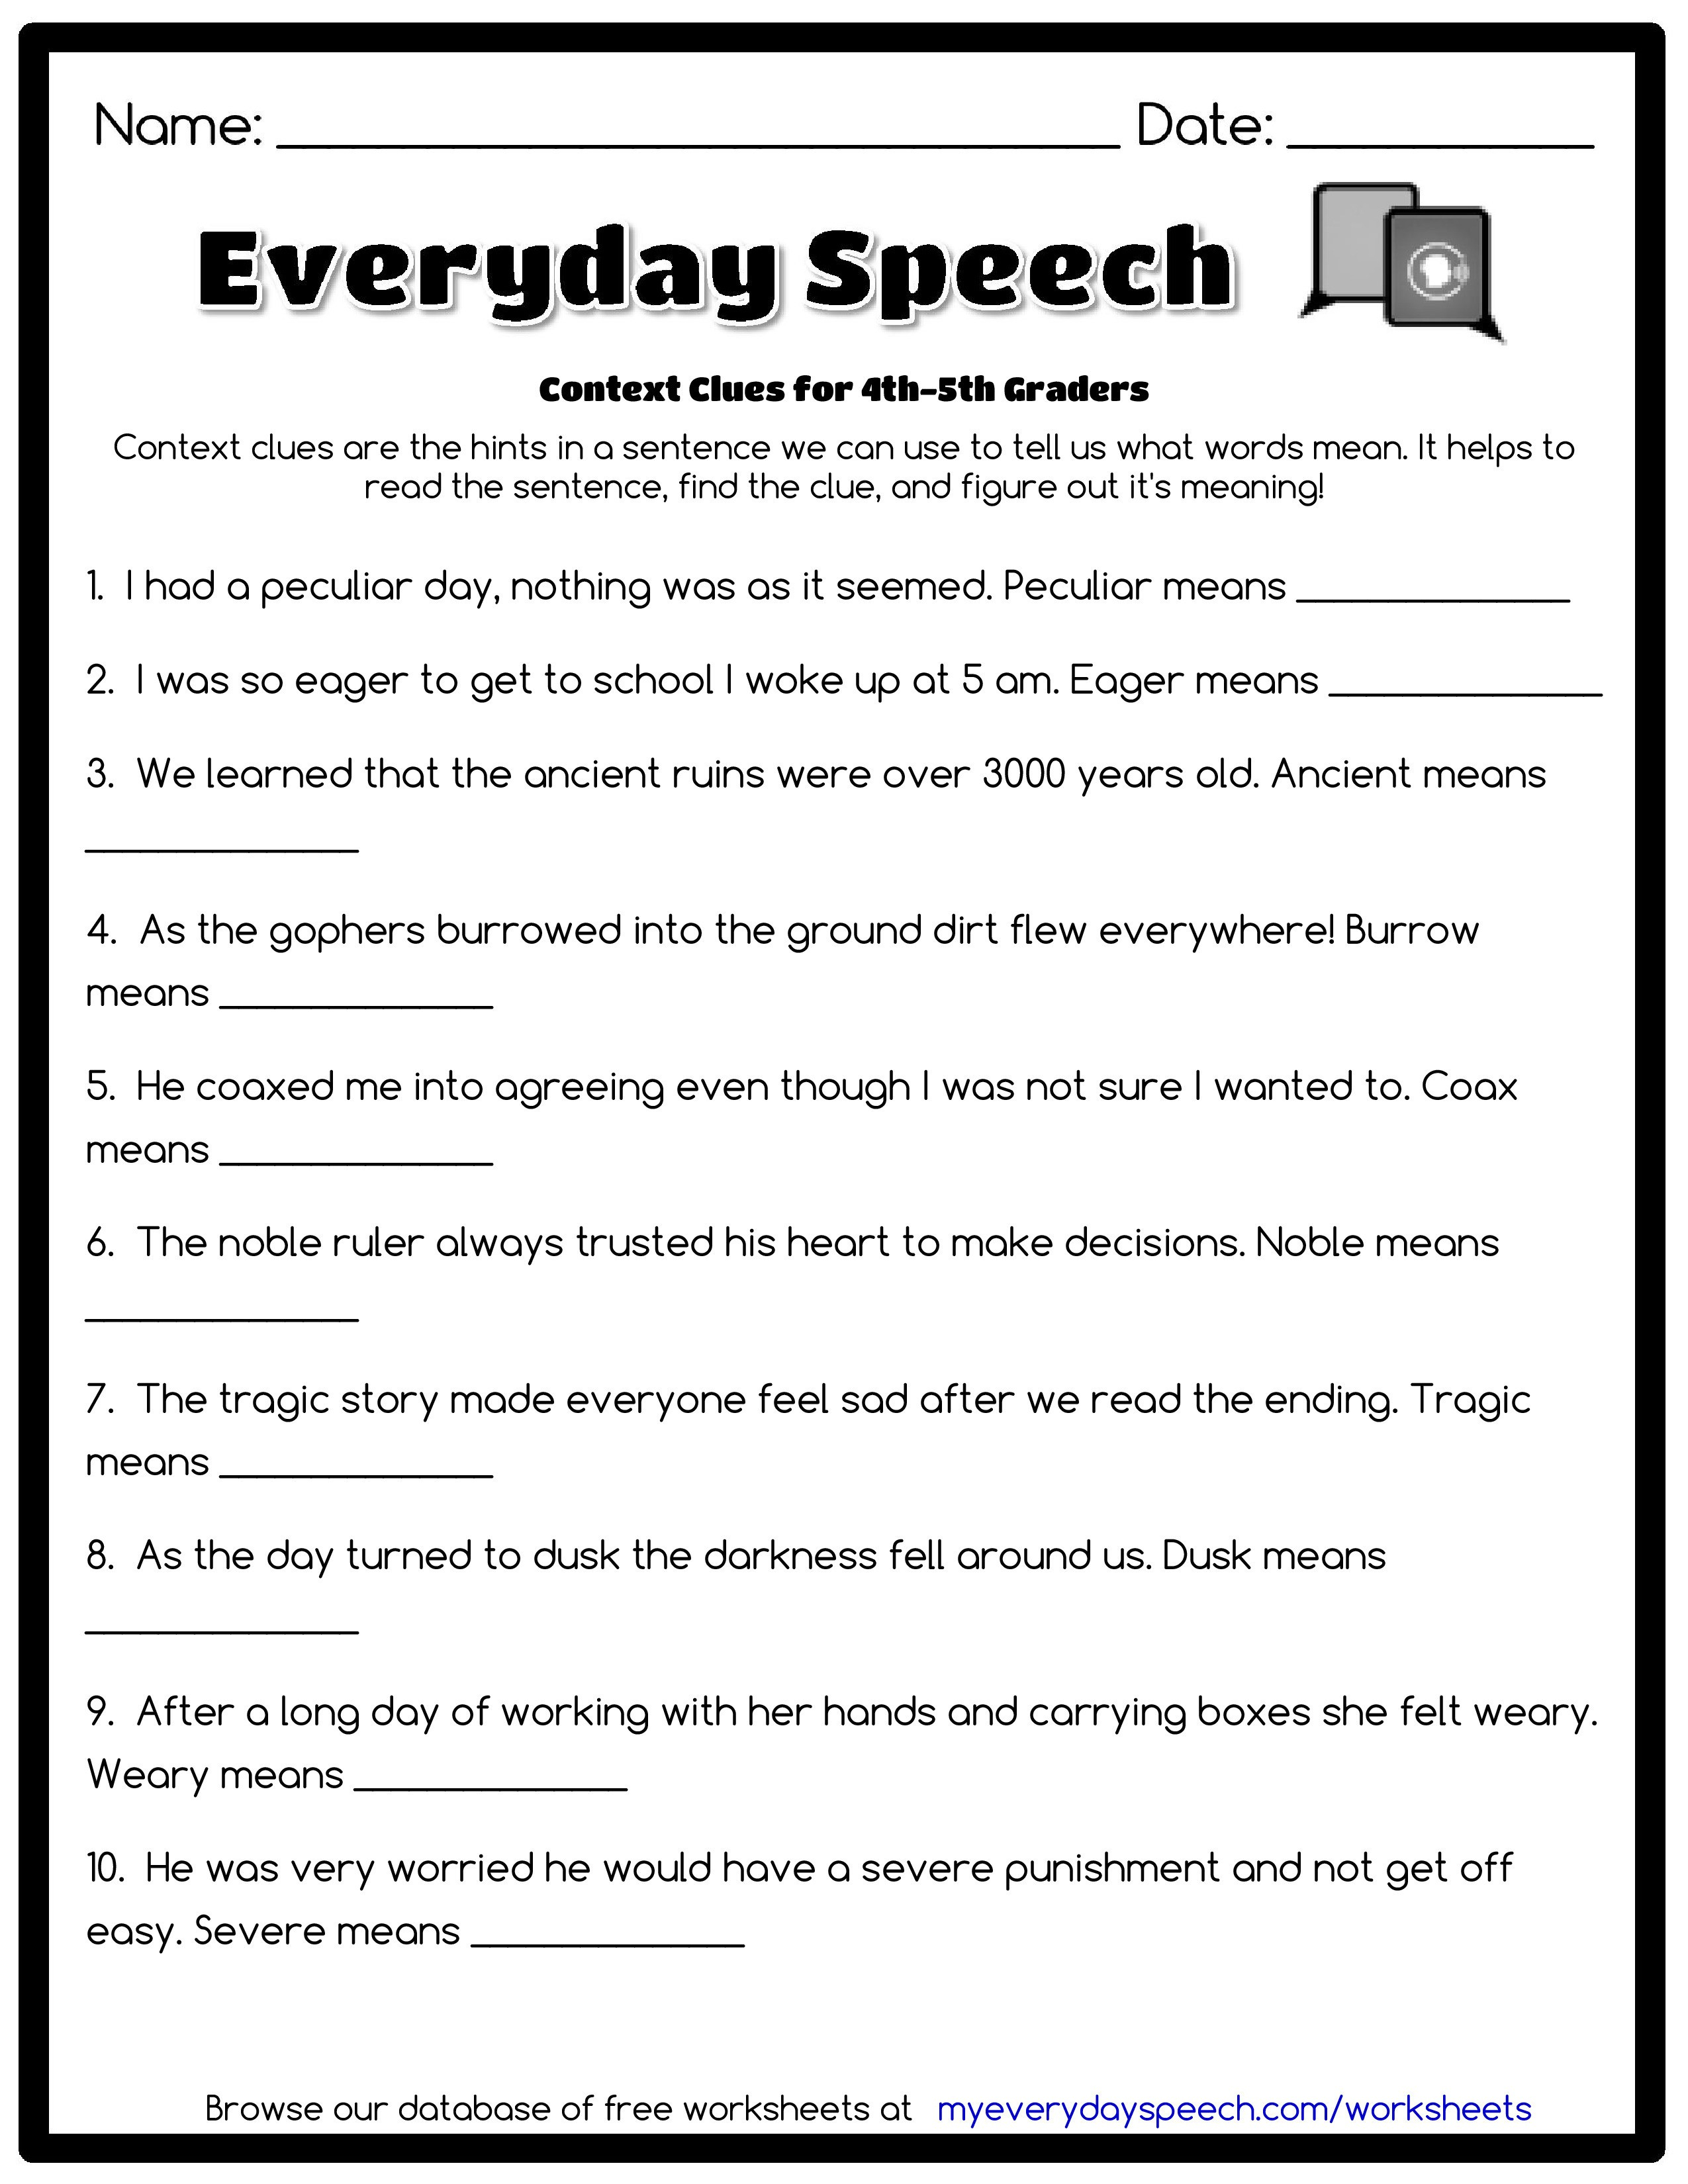 Context Clues Worksheets 5Th Grade To Free - Math Worksheet For Kids - Free Printable 5Th Grade Context Clues Worksheets